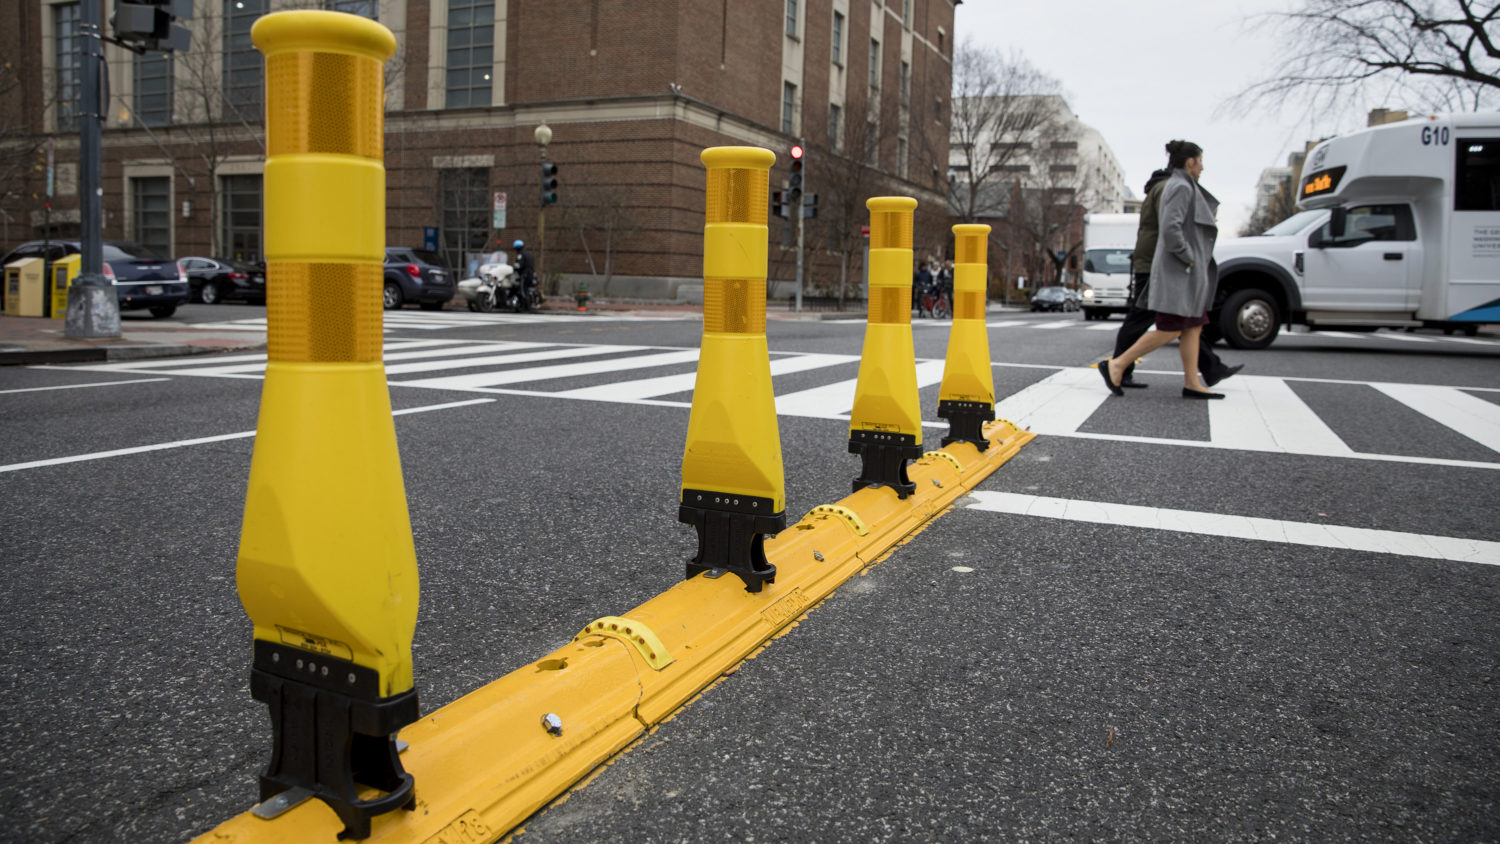 Картинки по запросу yellow pylons in the center of streets to slow down cars